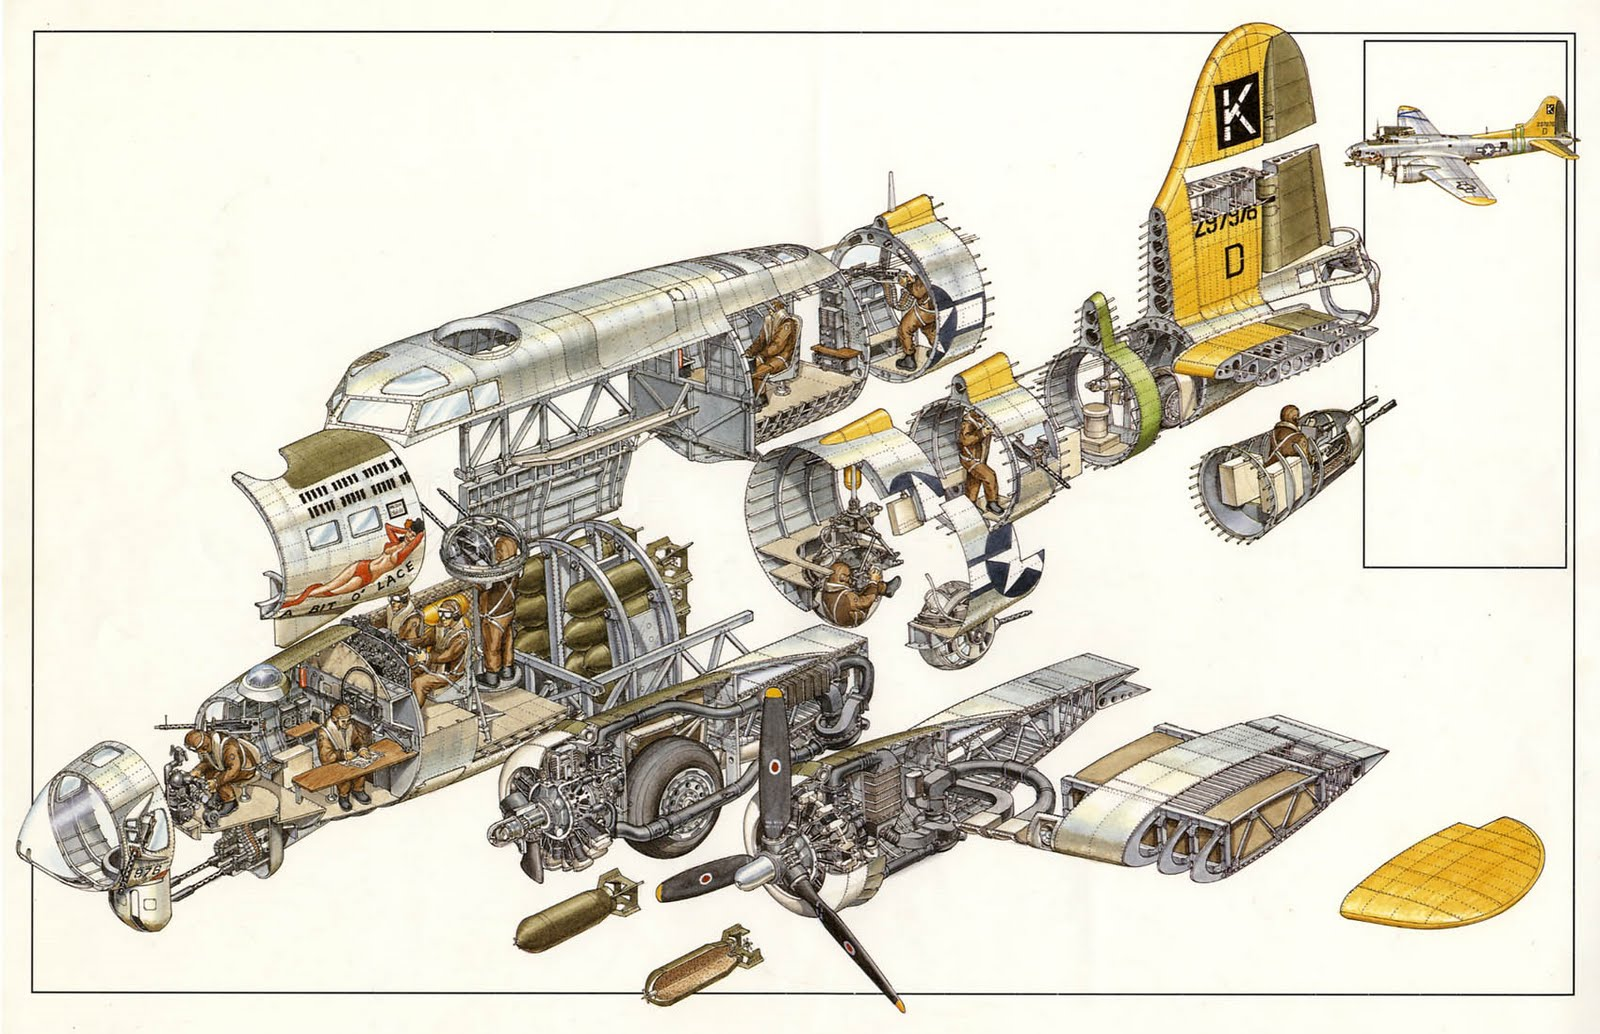 1945 liberator aircraft cutaway and planes rh pinterest com Boeing B-17 Flying Fortress Engines B-29 Engine Specs